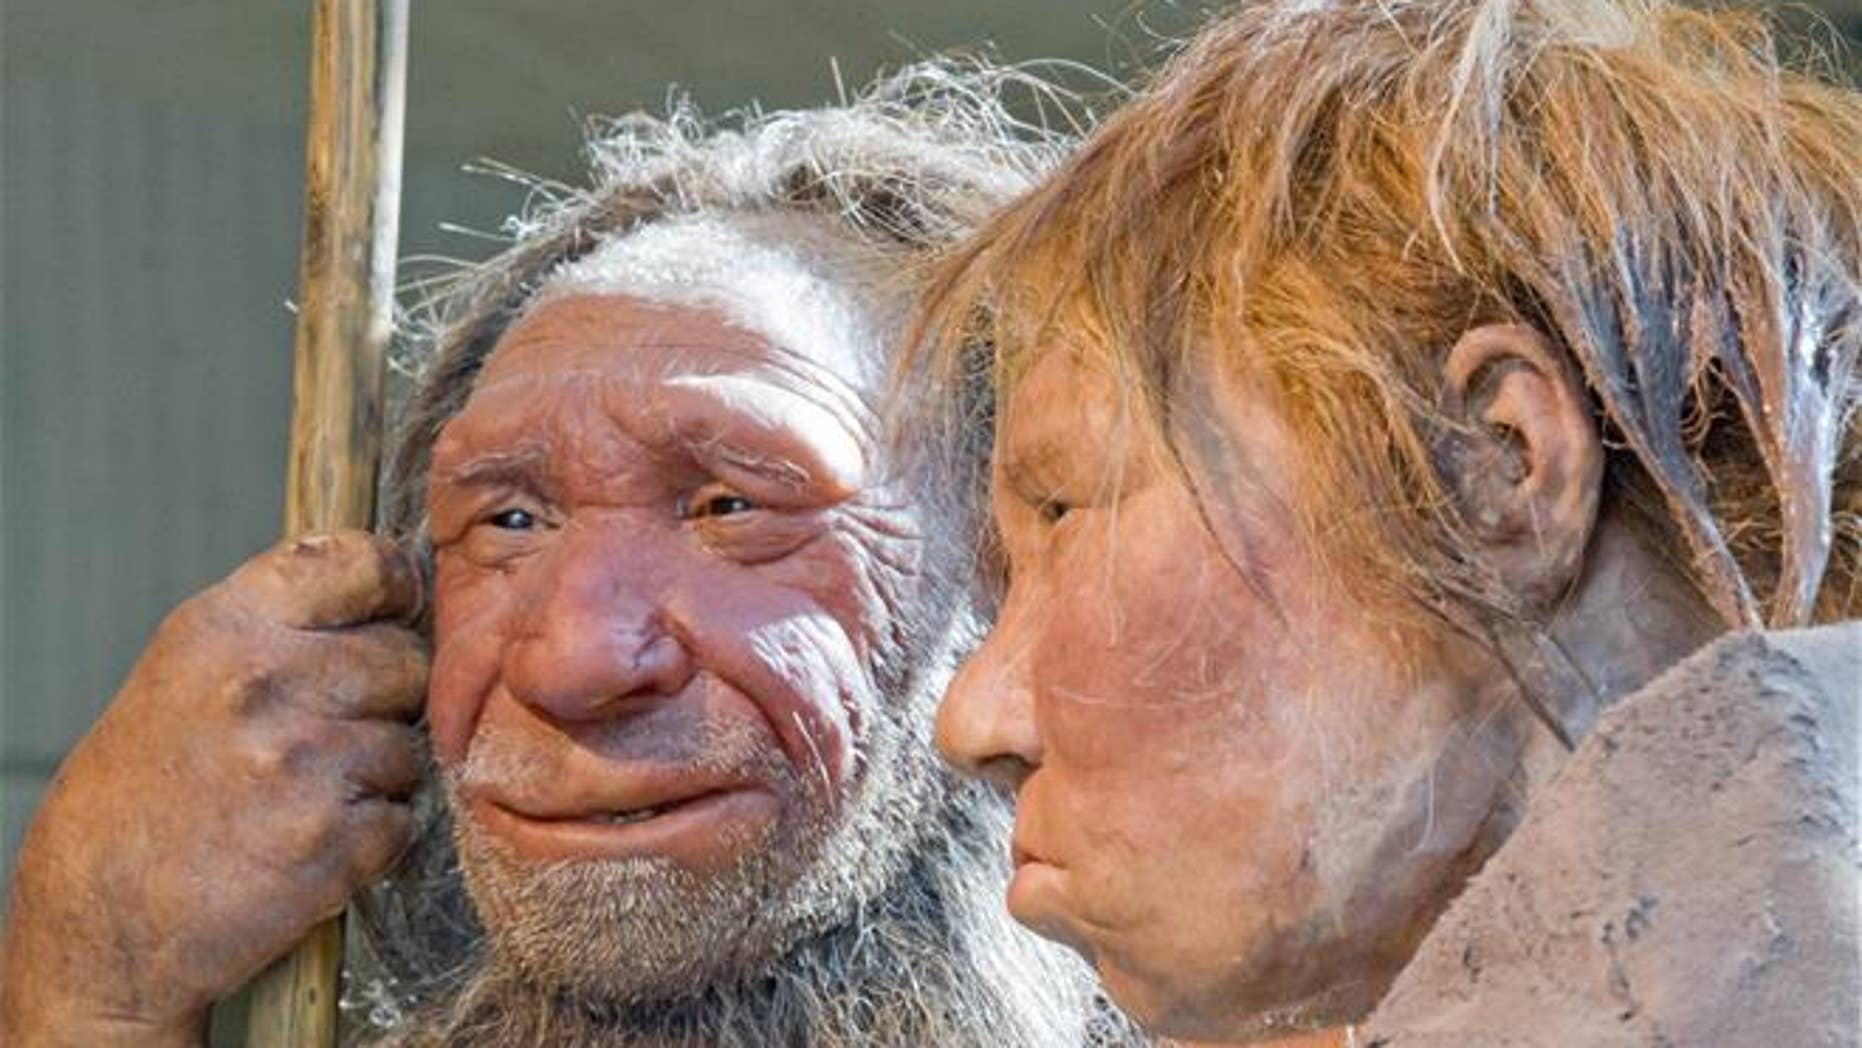 """This March 20, 2009, file photo shows reconstructions of a Neanderthal man named """"N,"""" left, and woman called """"Wilma,"""" right, at the Neanderthal Museum in Mettmann, Germany."""